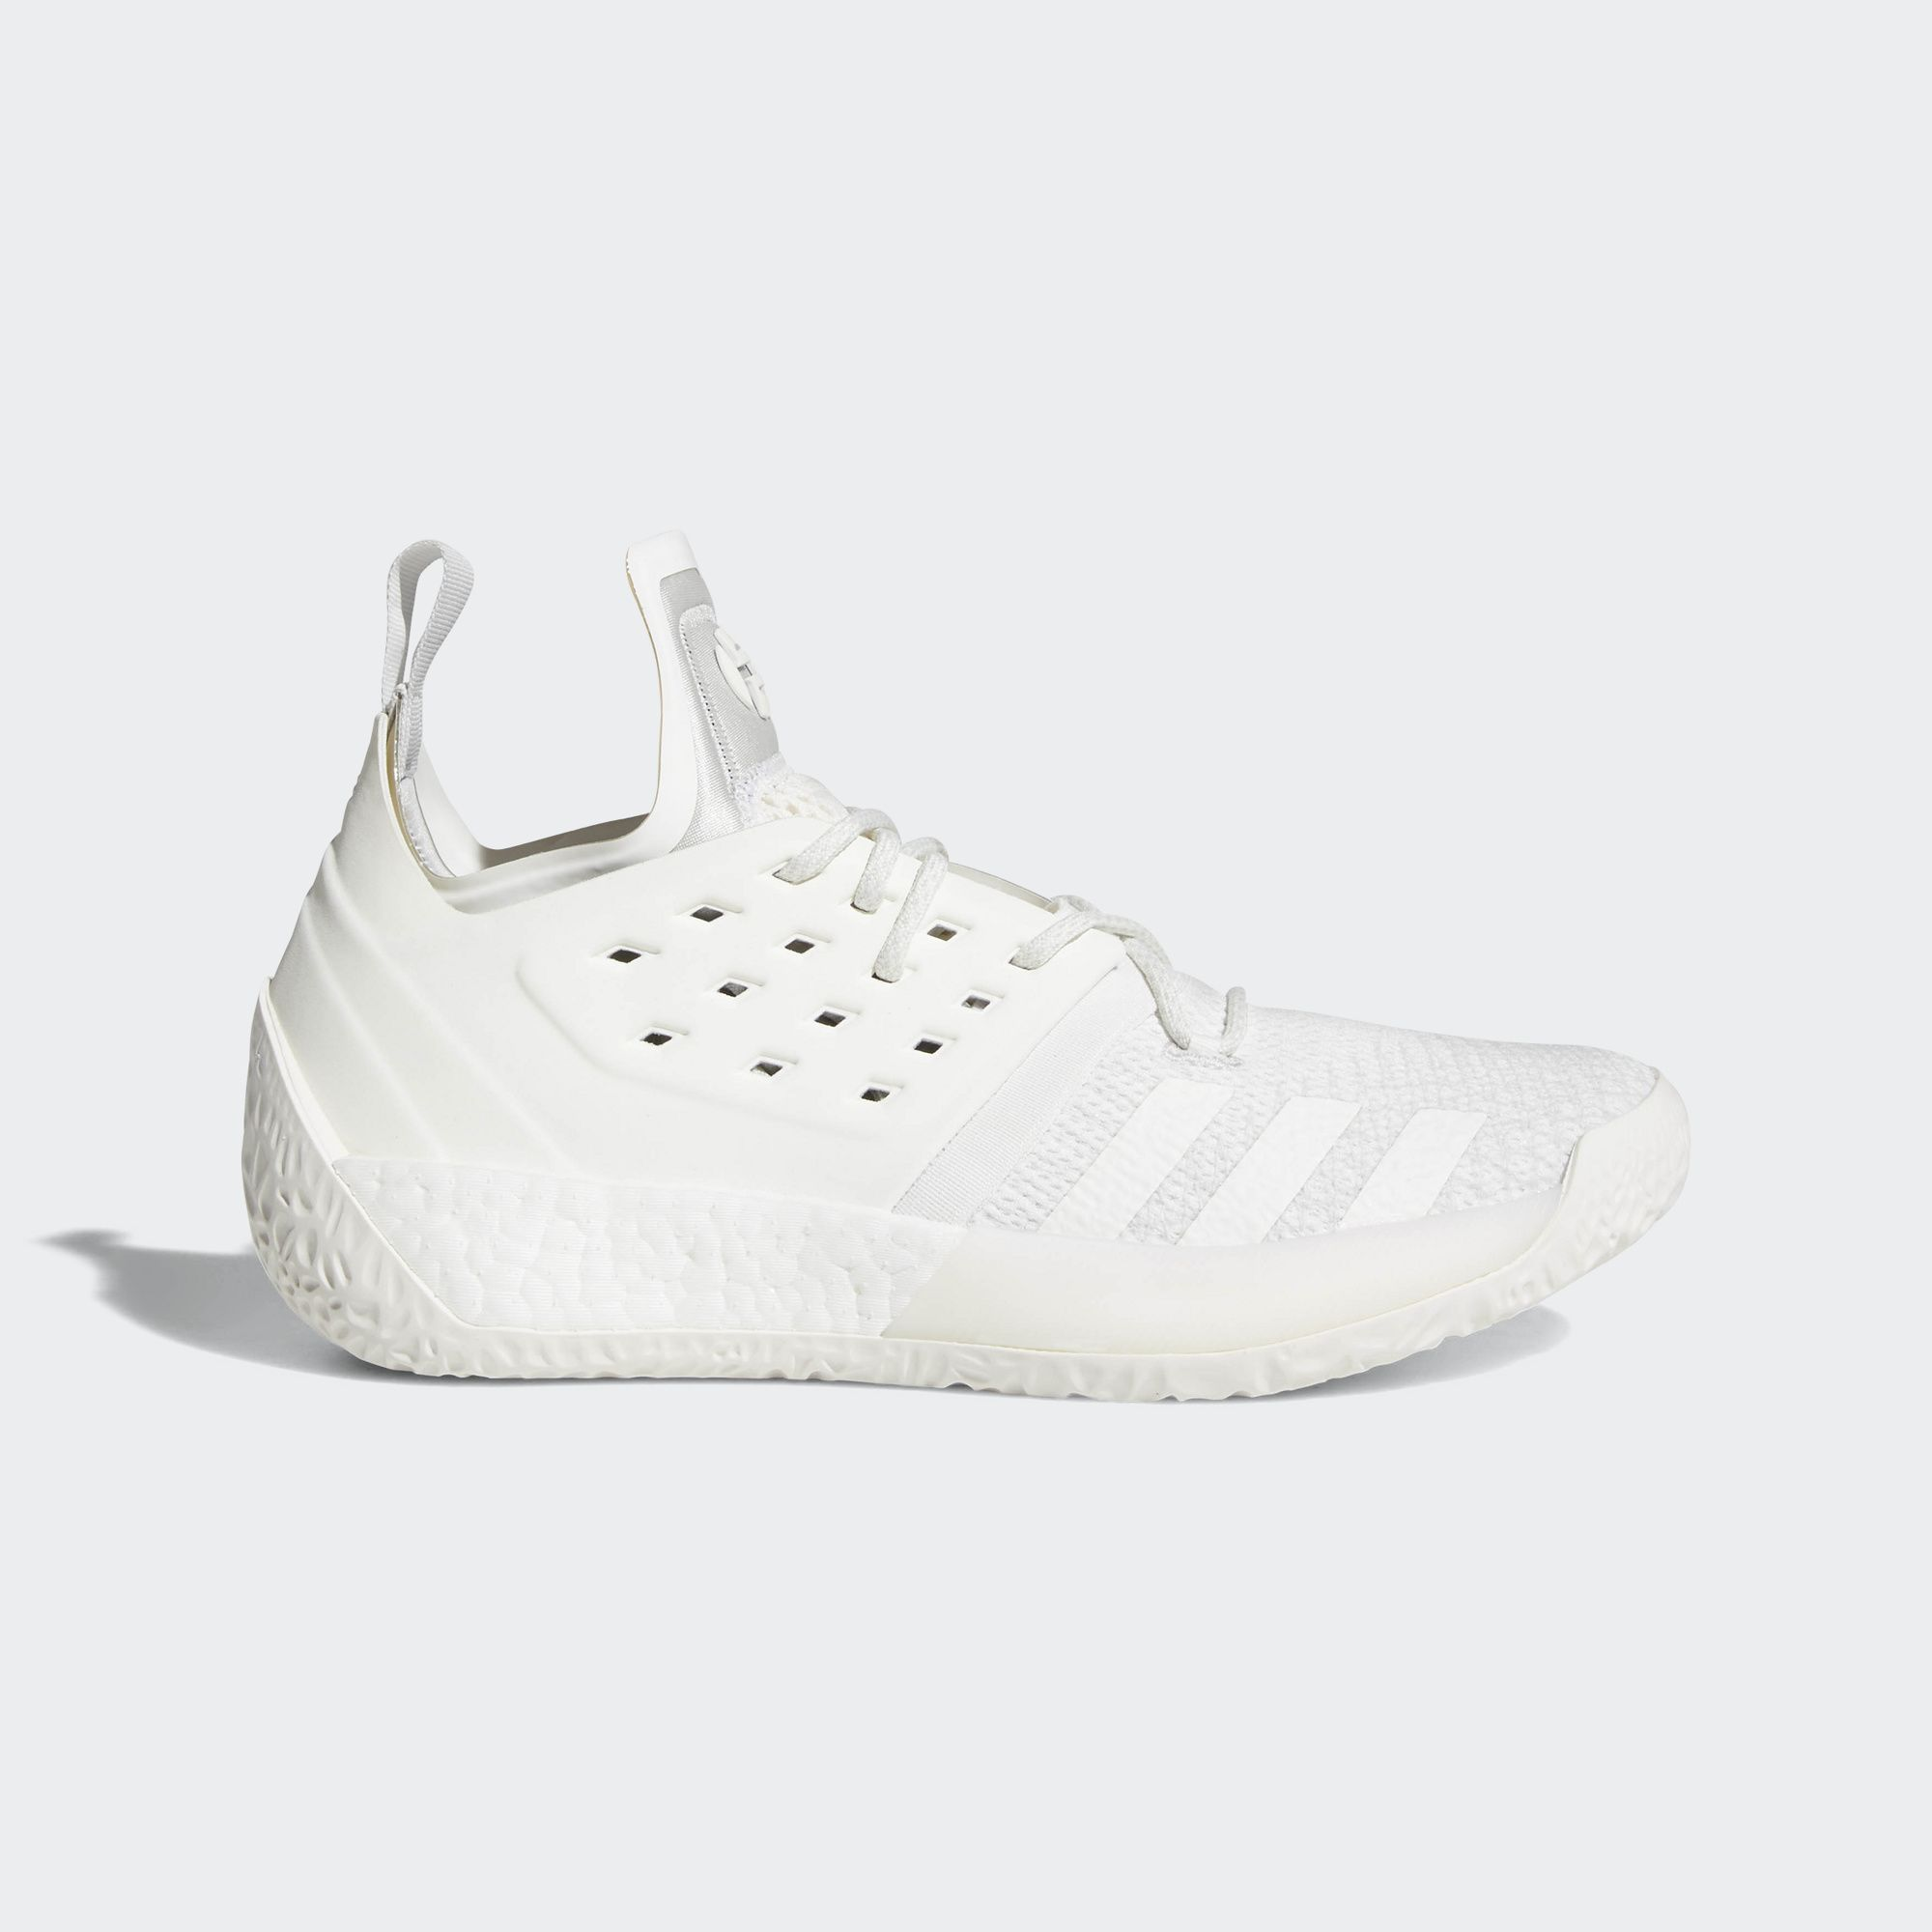 adidas harden vol 2 off white - WearTesters